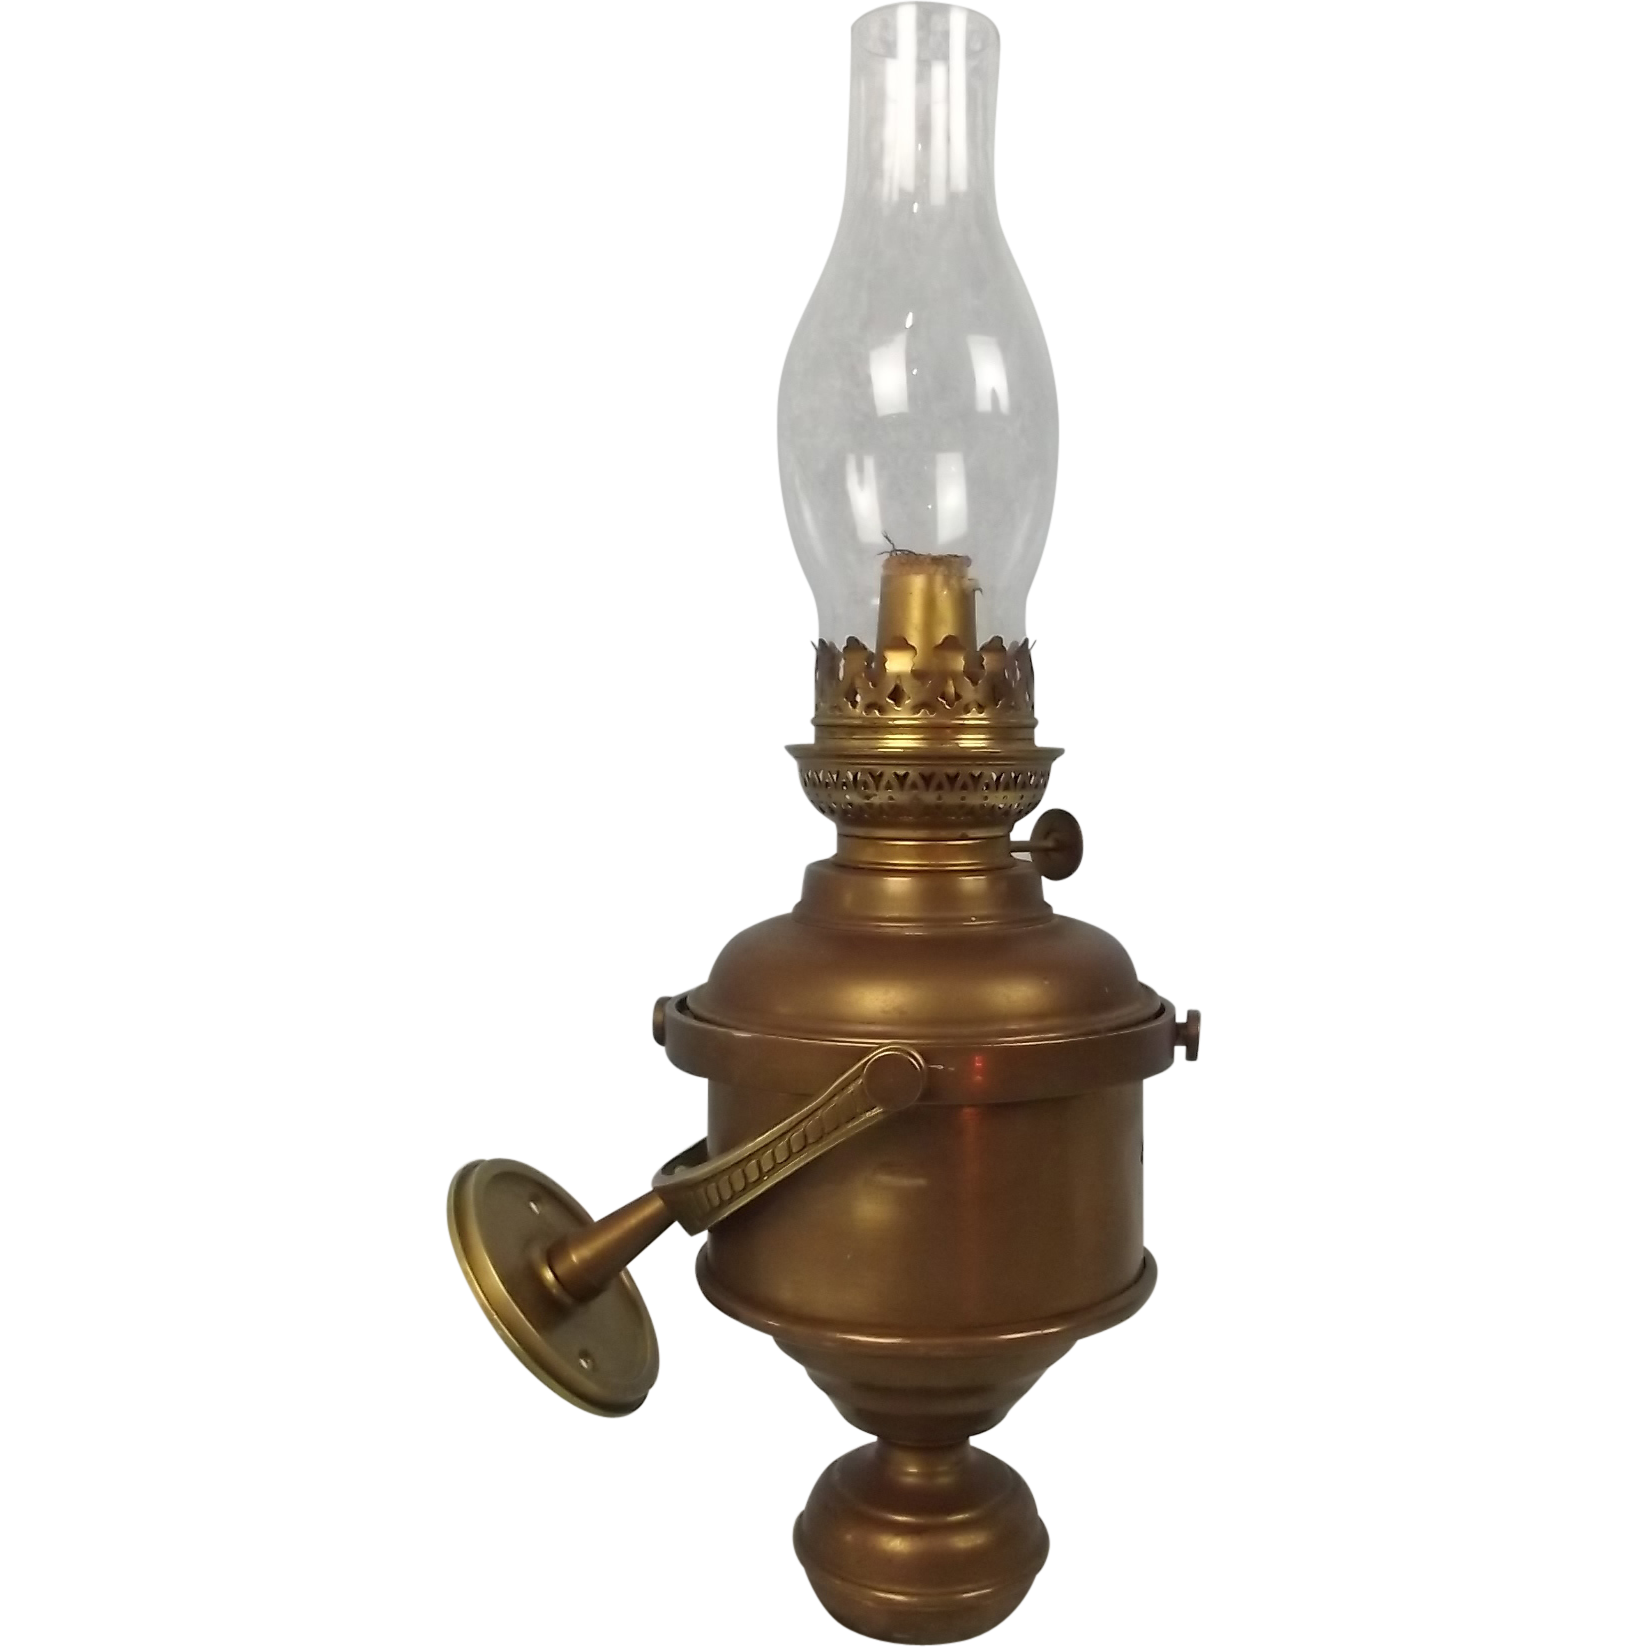 Wall Mounted Brass Oil Lamps : Nautical Brass Gimballed Wall Oil Lamp from theantiquesstorehouse on Ruby Lane